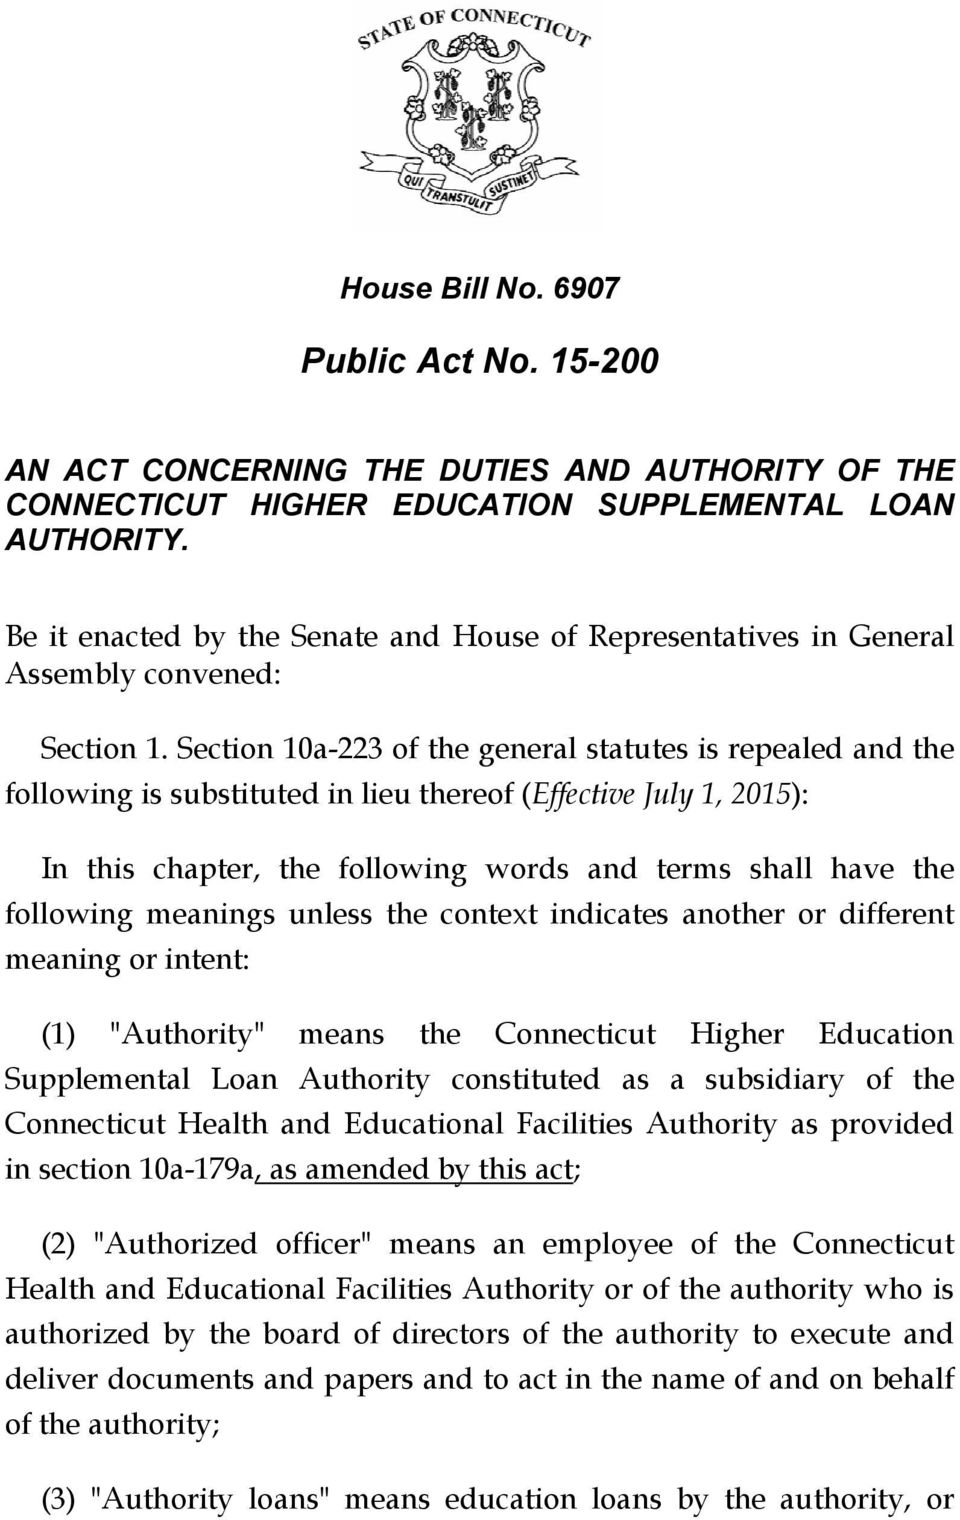 Section 10a-223 of the general statutes is repealed and the following is substituted in lieu thereof (Effective July 1, 2015): In this chapter, the following words and terms shall have the following